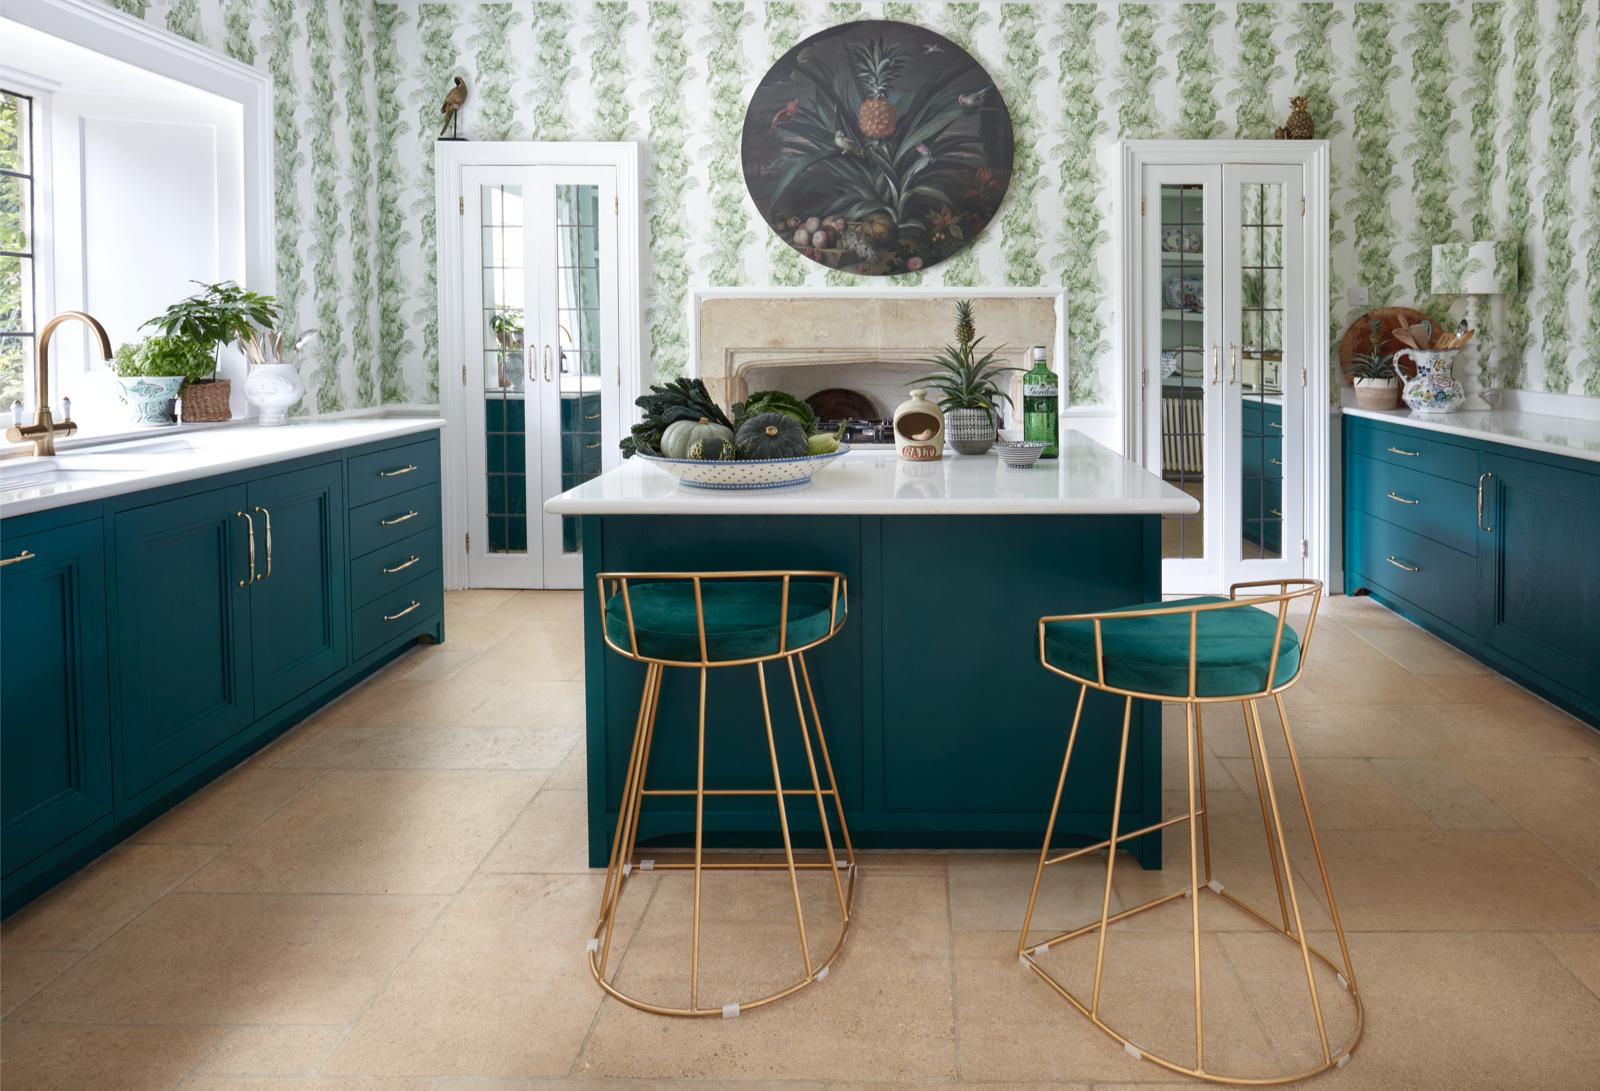 Kitchen painted for Laurence Lewelyn-Bowen in Gin Bottle Green, Cirencester, Cotswolds